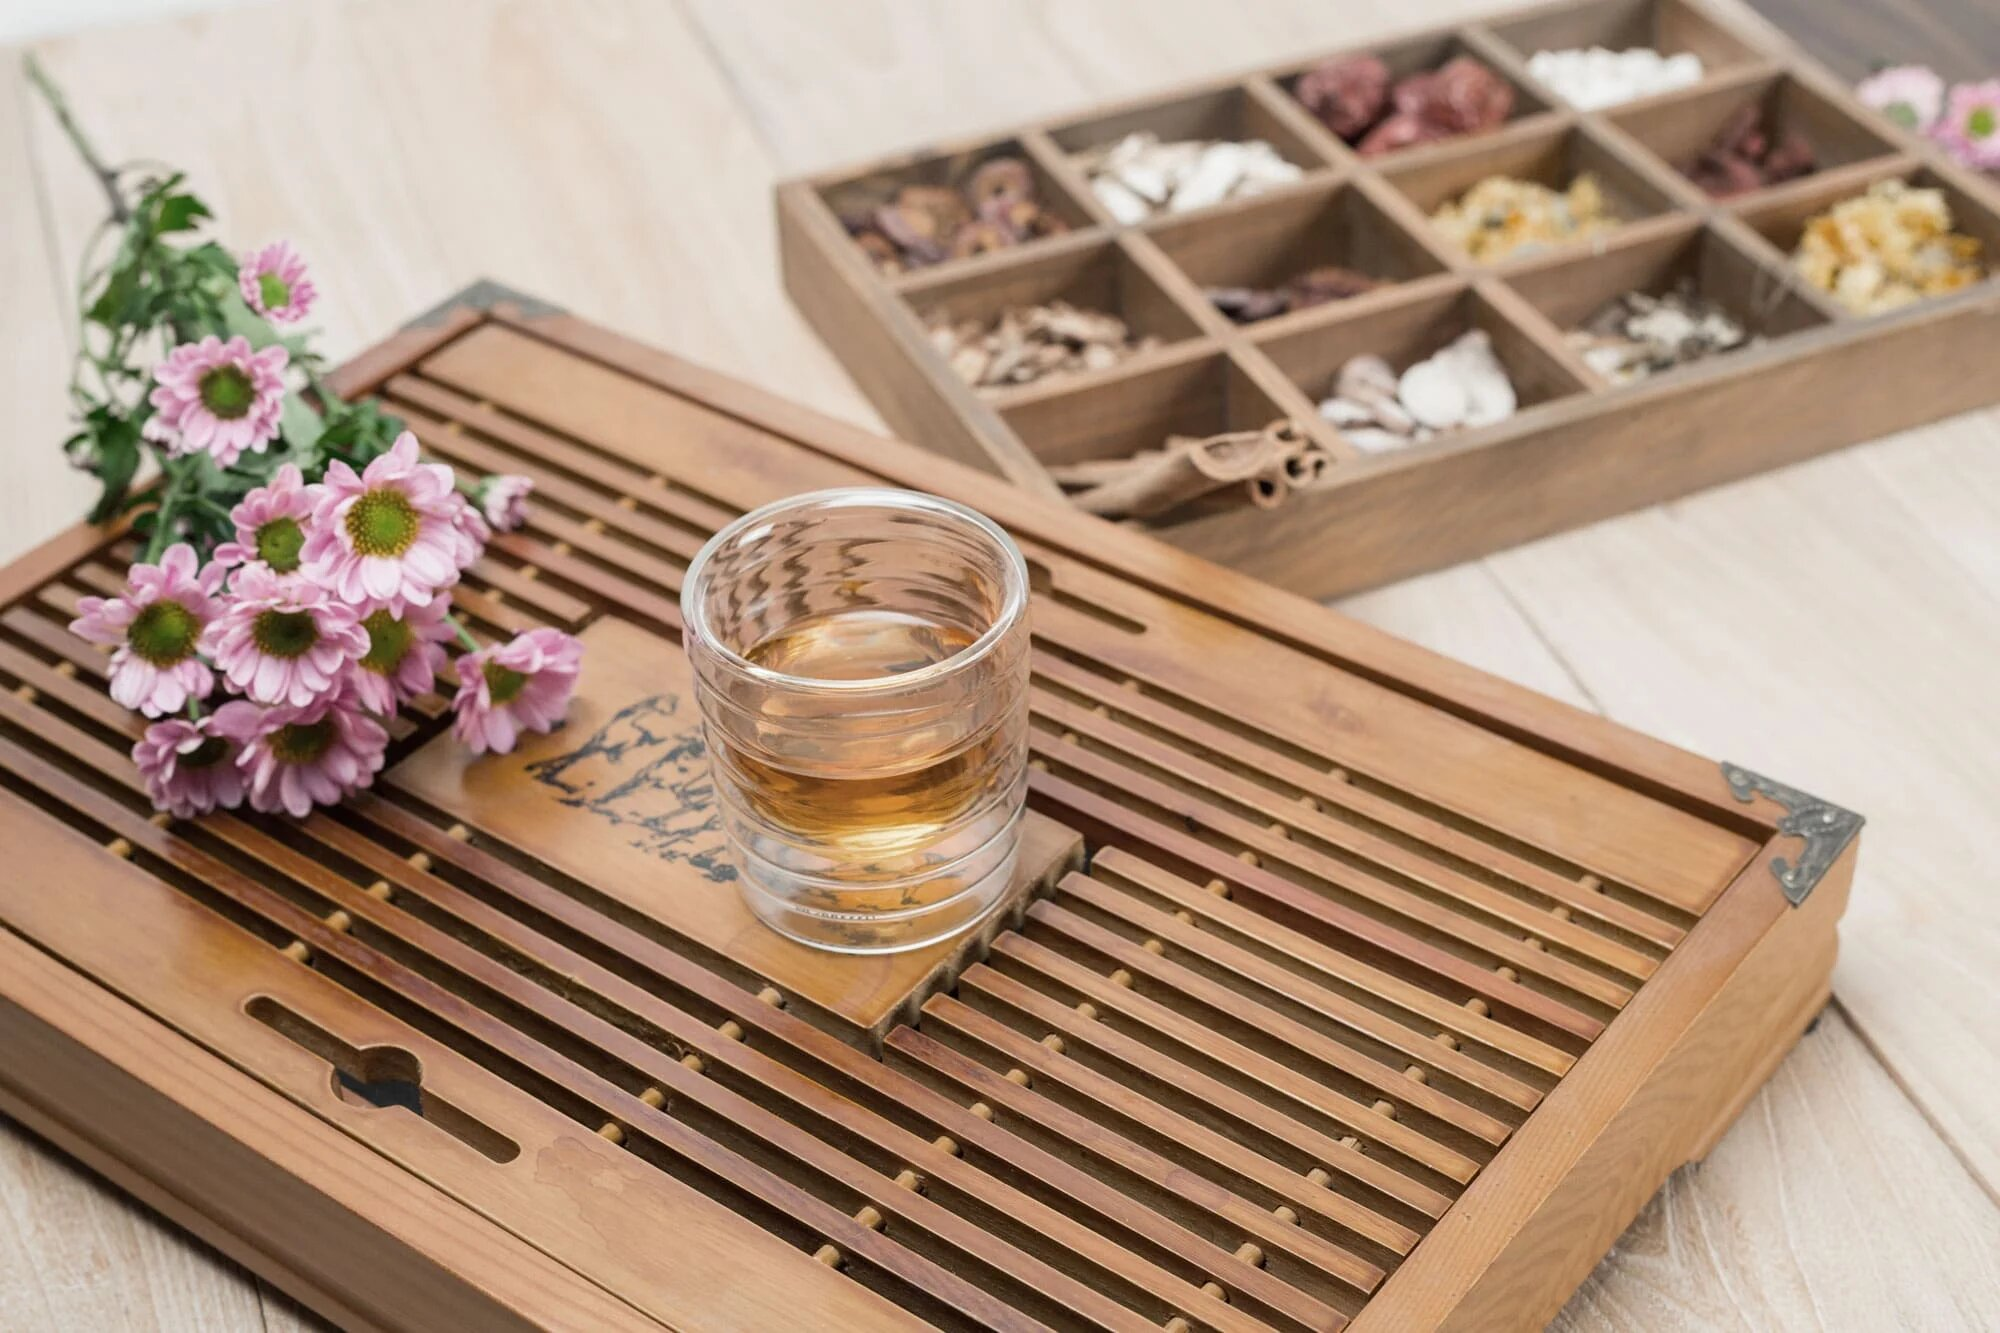 Wooden tray with glass of tea and pink flowers placed on top